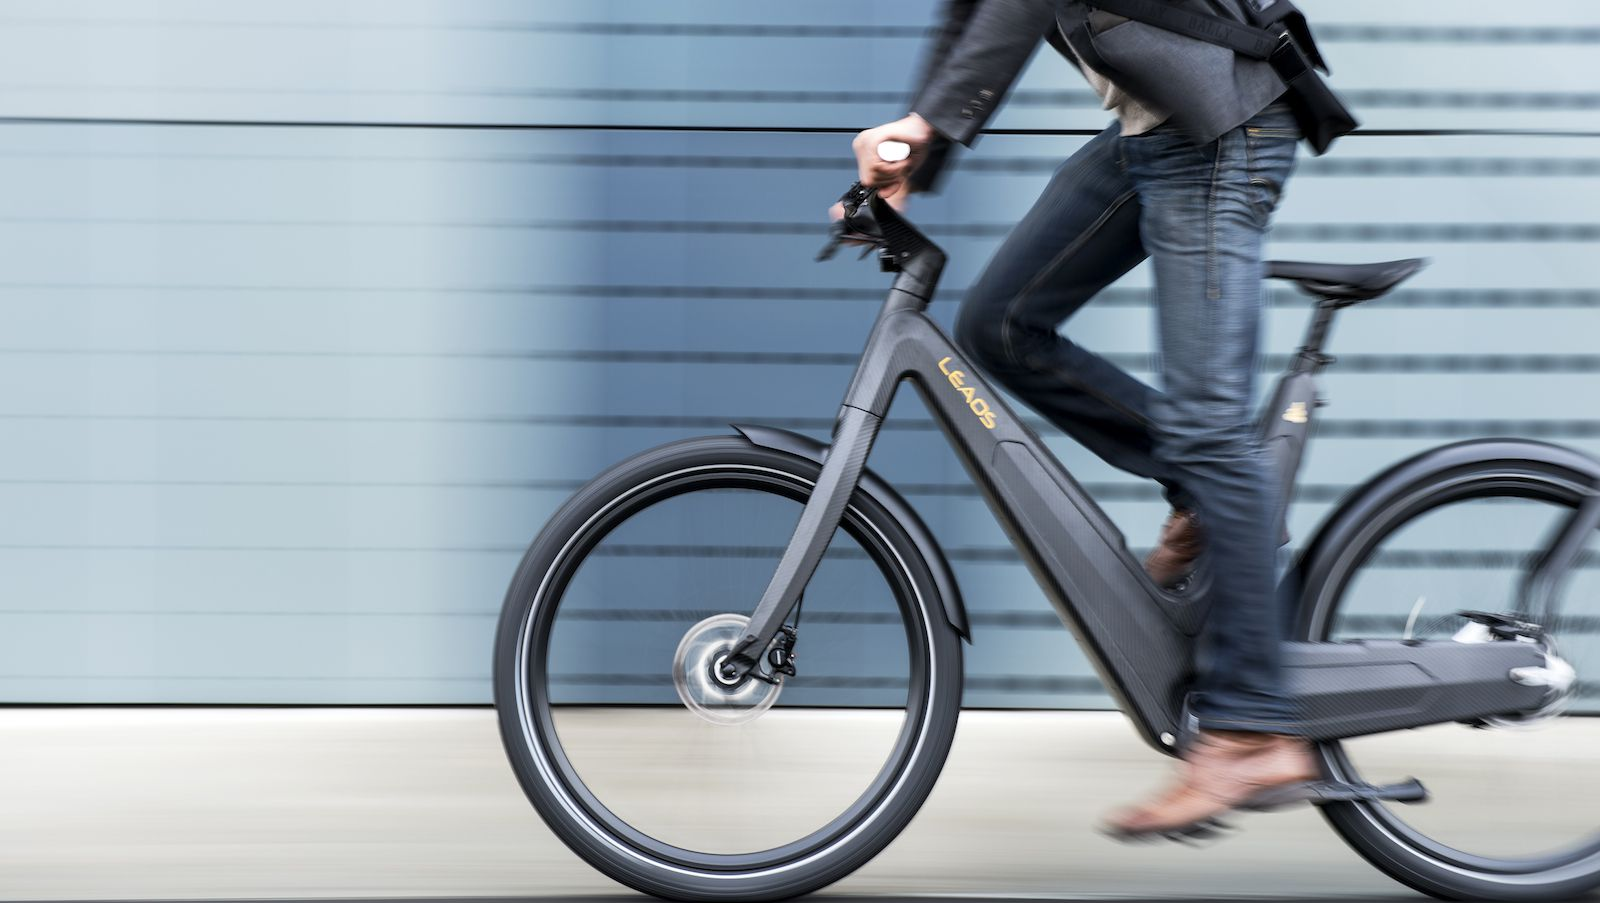 Man riding Leaos electric bicycle